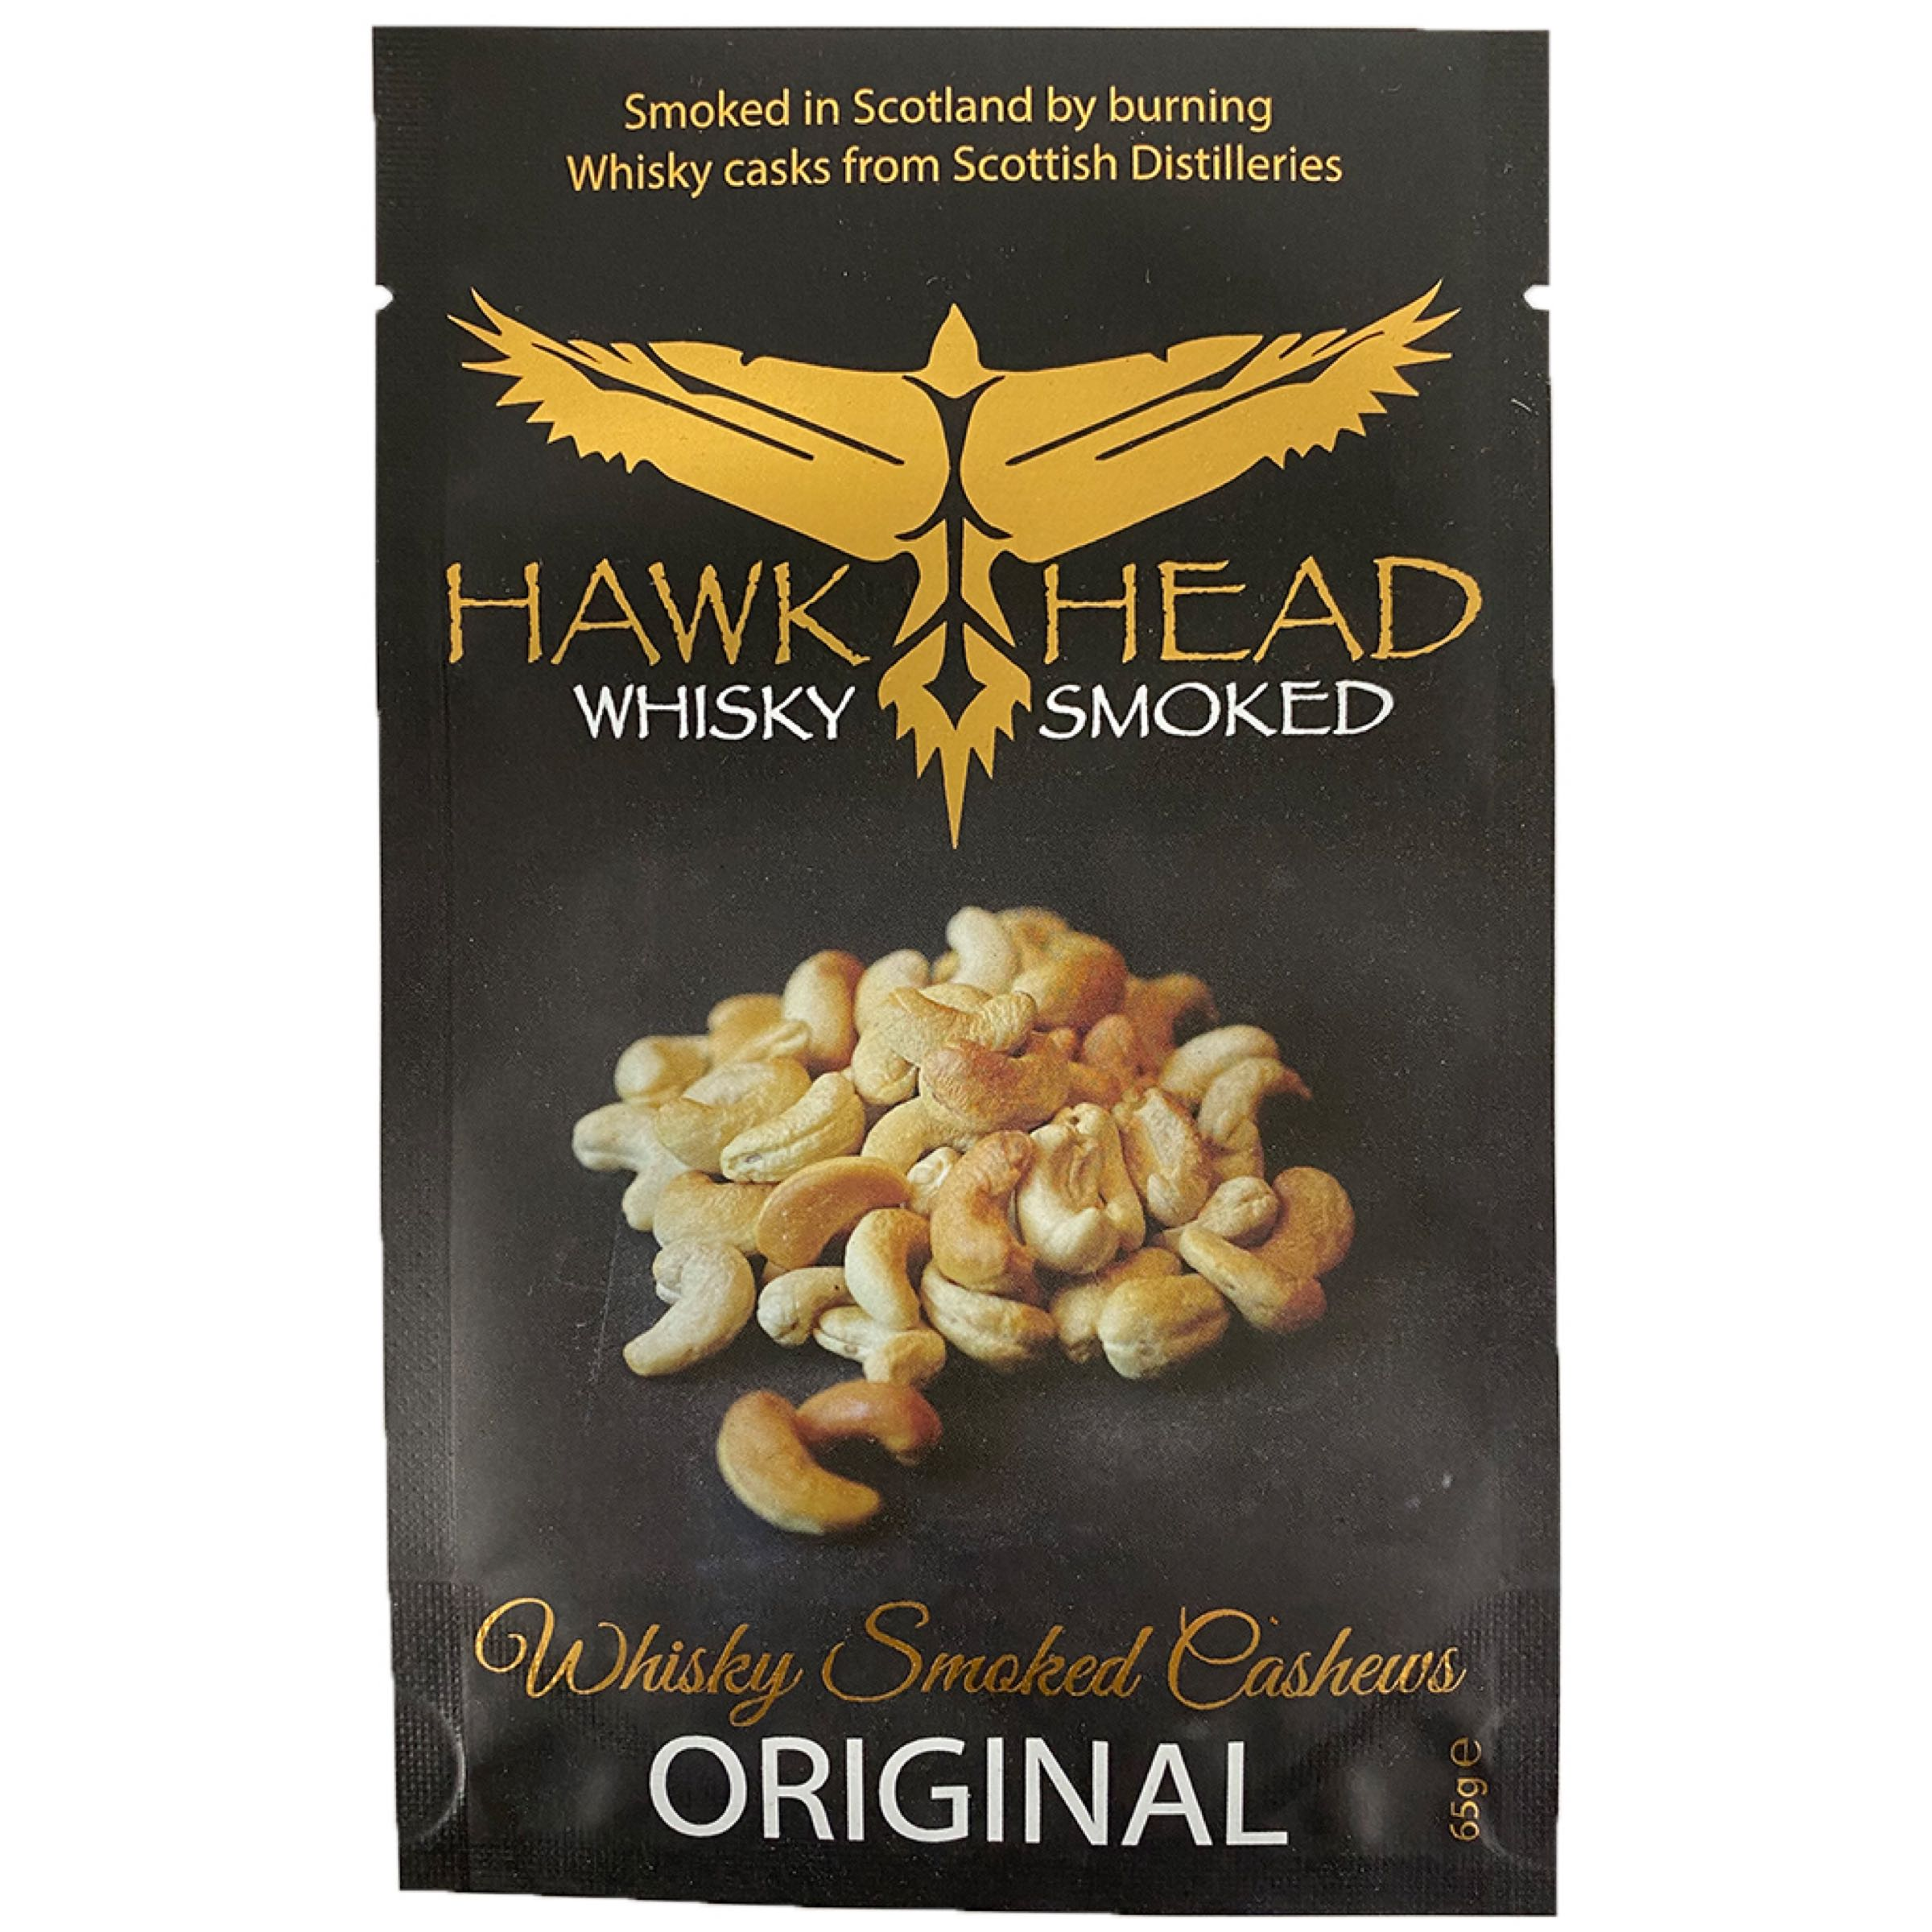 Original Whisky Smoked Cashews